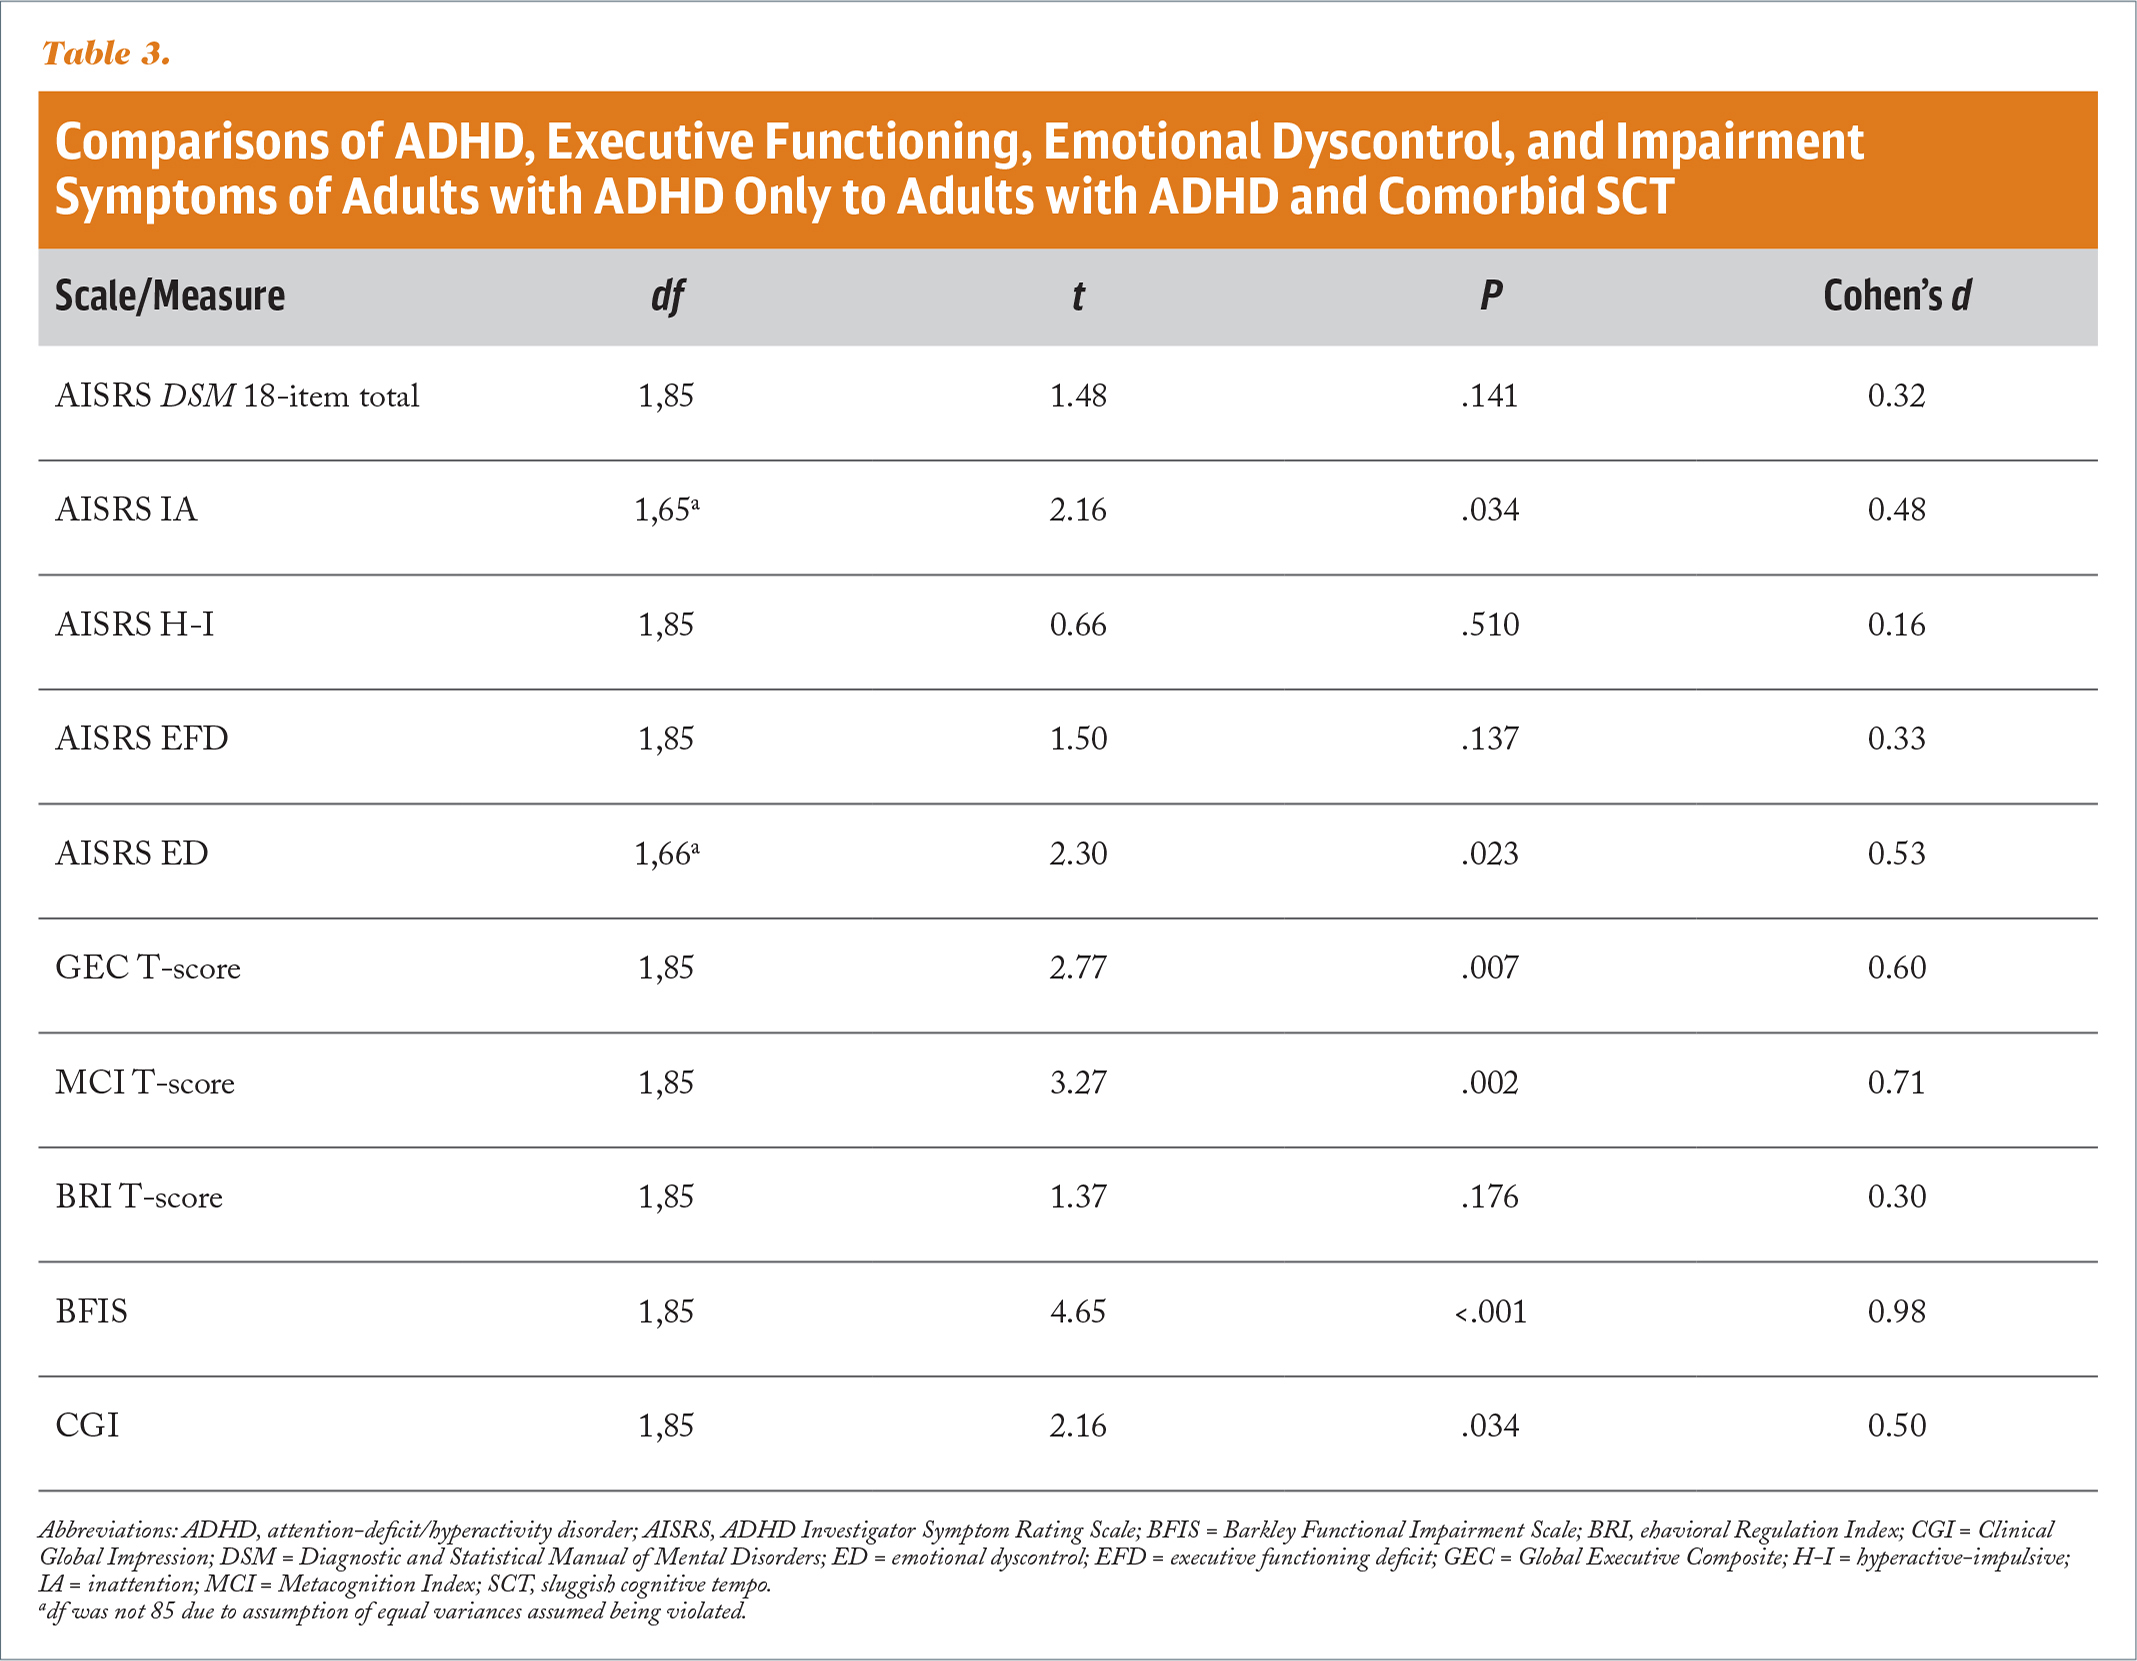 Comparisons of ADHD, Executive Functioning, Emotional Dyscontrol, and Impairment Symptoms of Adults with ADHD Only to Adults with ADHD and Comorbid SCT